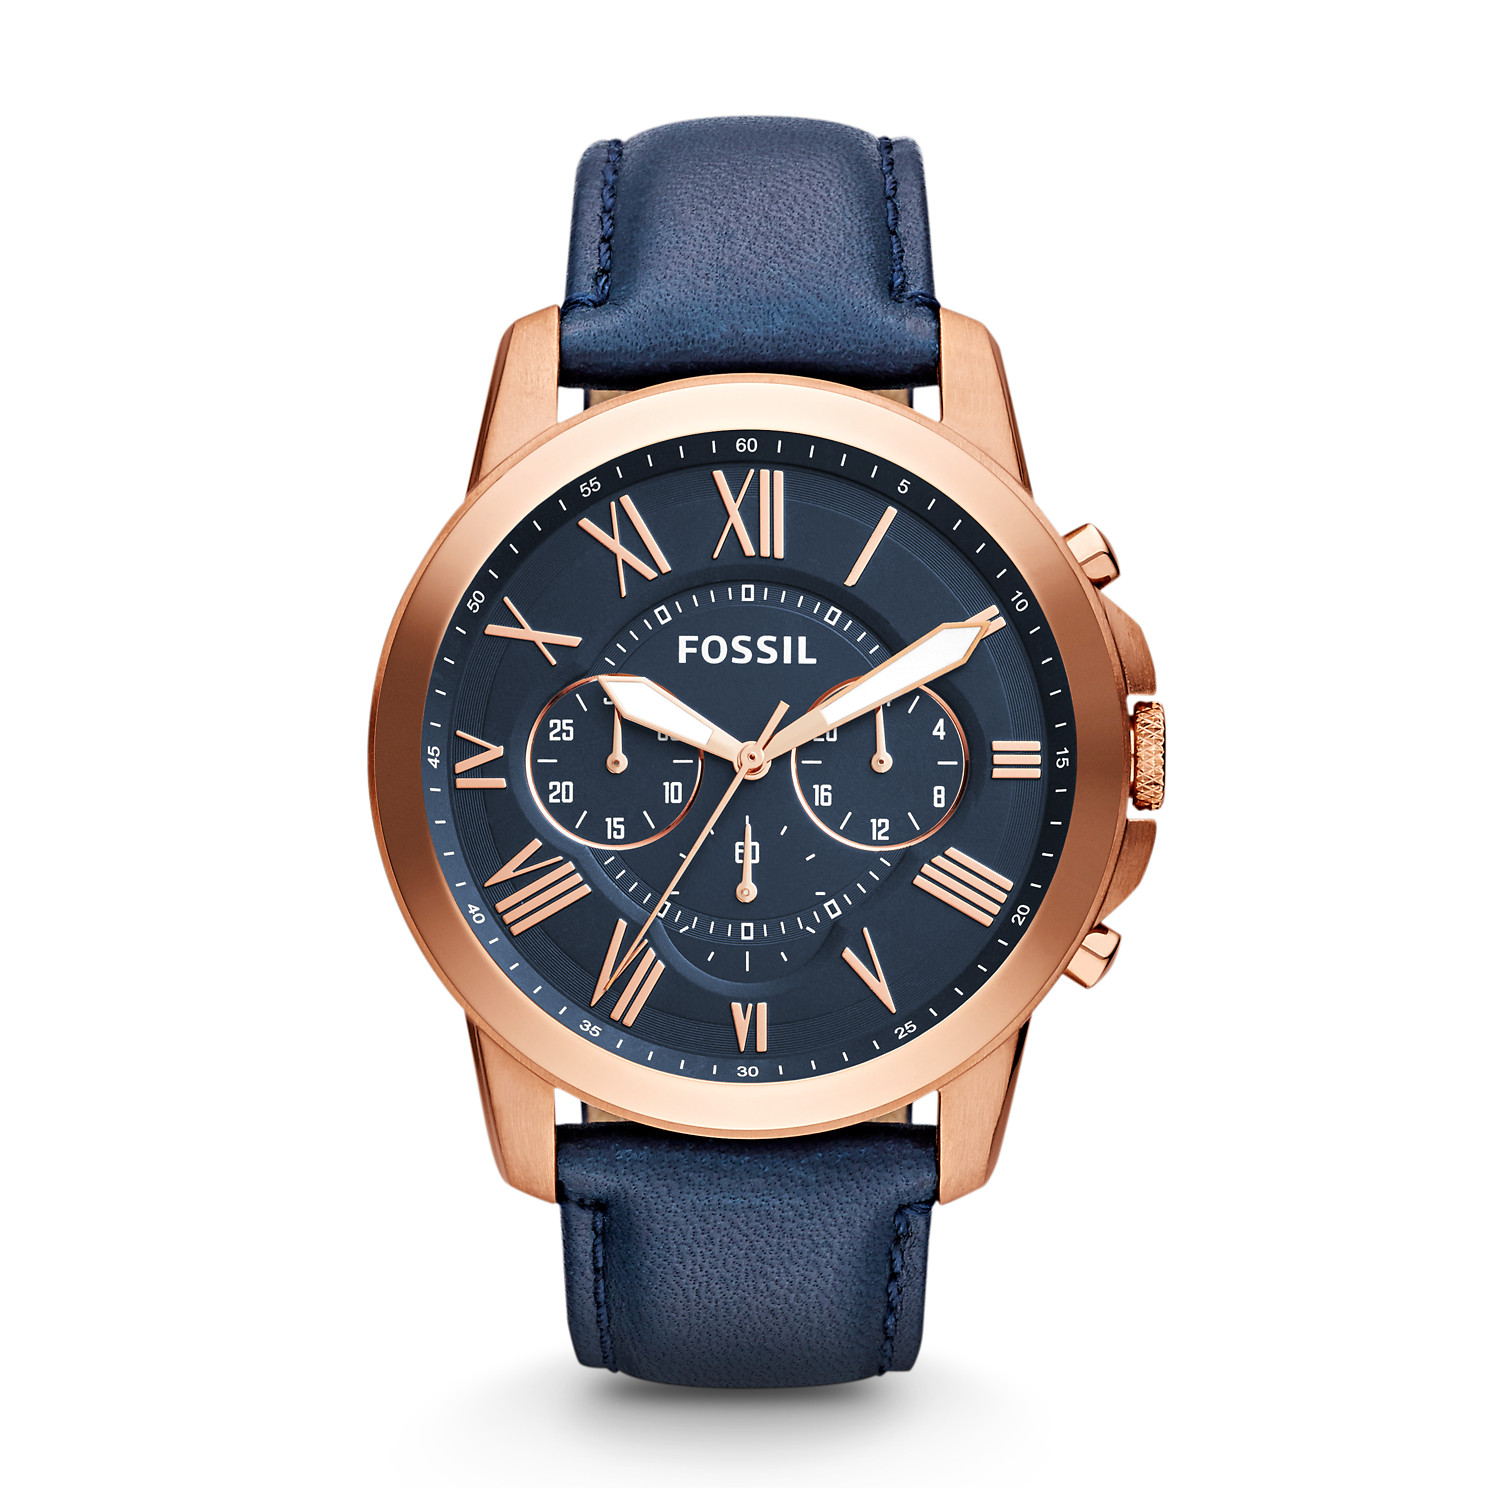 5efb86e7625b9 Grant Chronograph Navy Leather Watch - Fossil